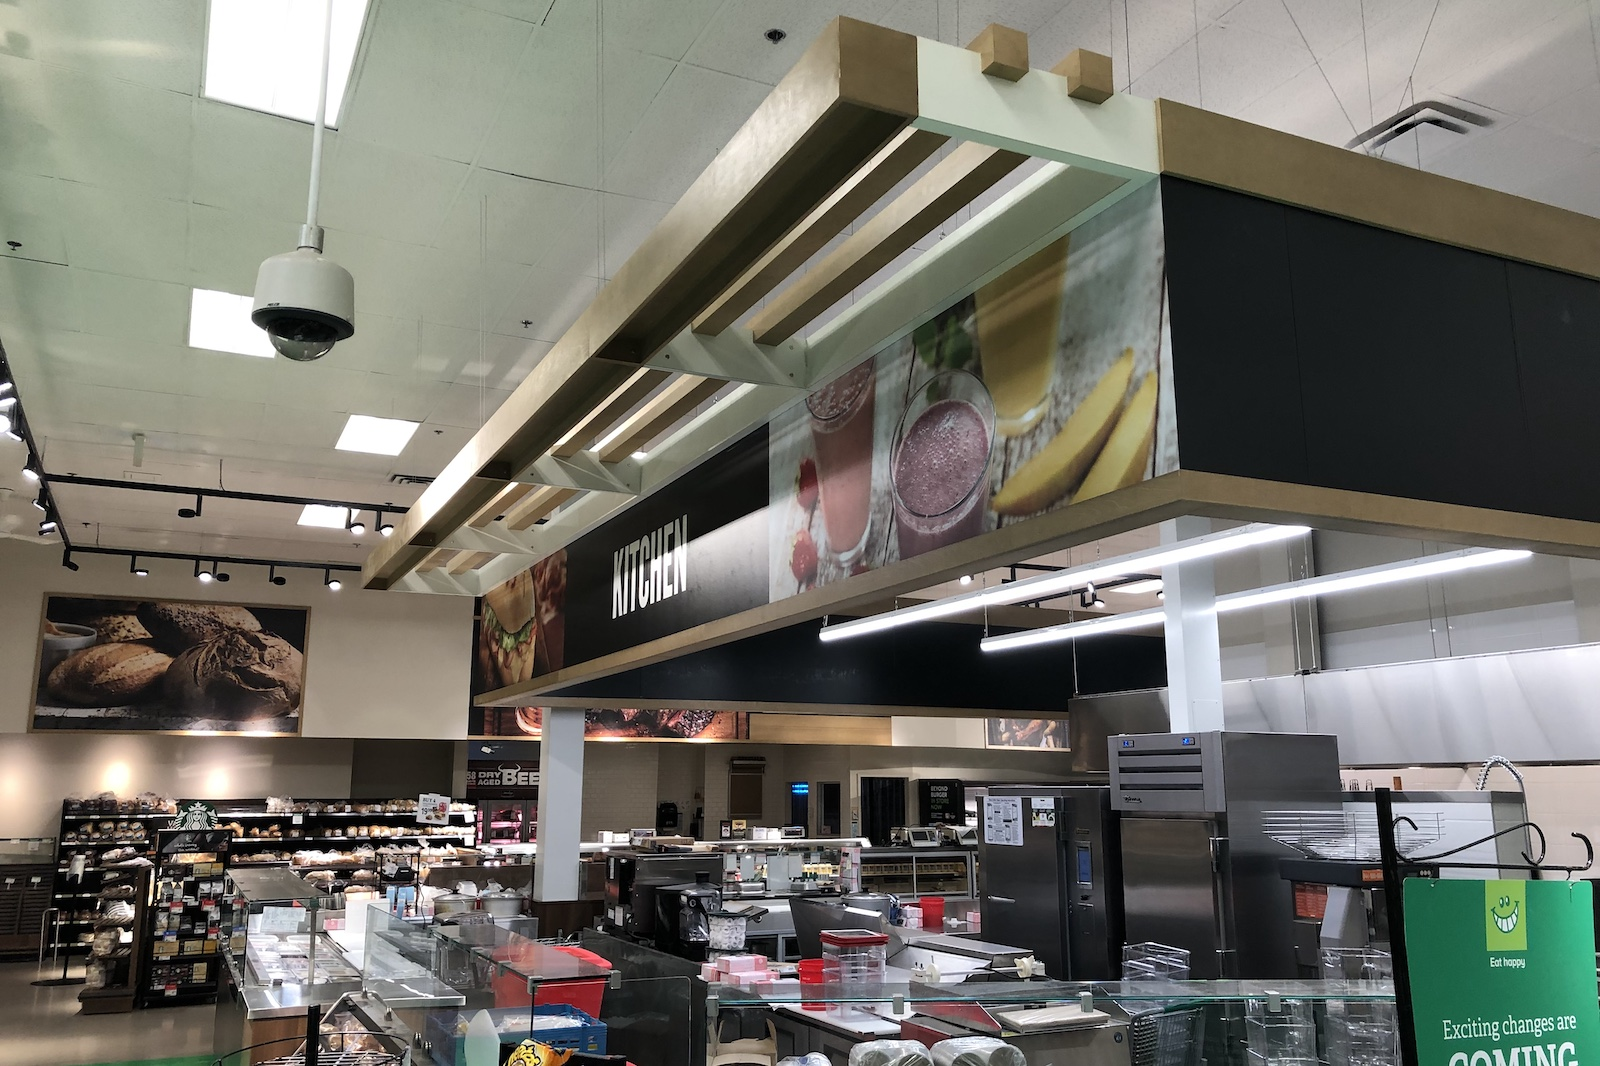 Completed Commercial Tenant Improvement project by Outline Millwork for Thrifty's Foods Broadmead Burnaby, BC featuring custom commercial millwork, custom cabinetry & woodworking.